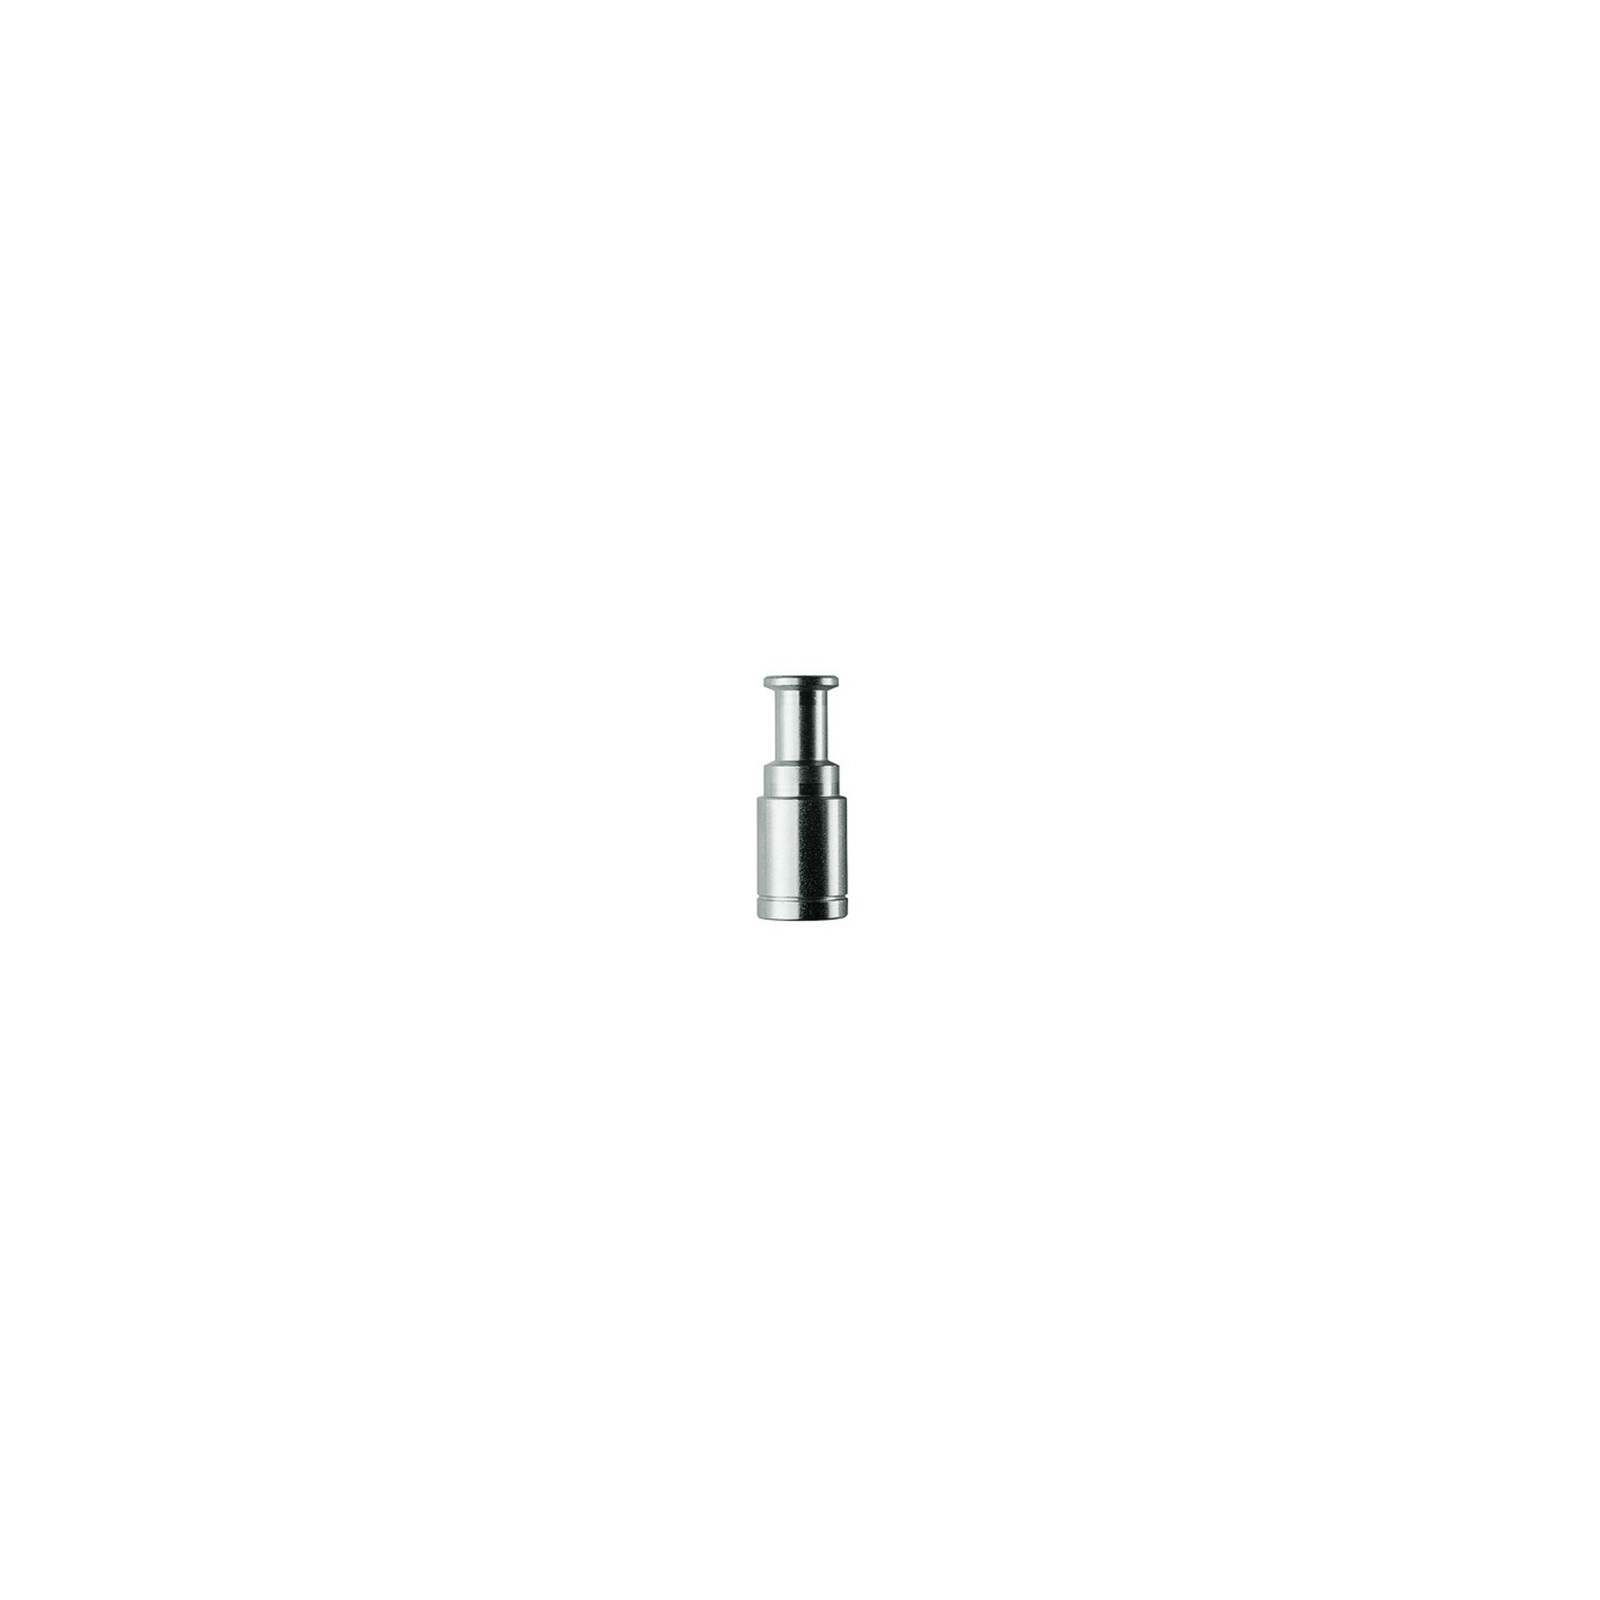 Manfrotto 187 Adapter M10 M - 5/8'' Male